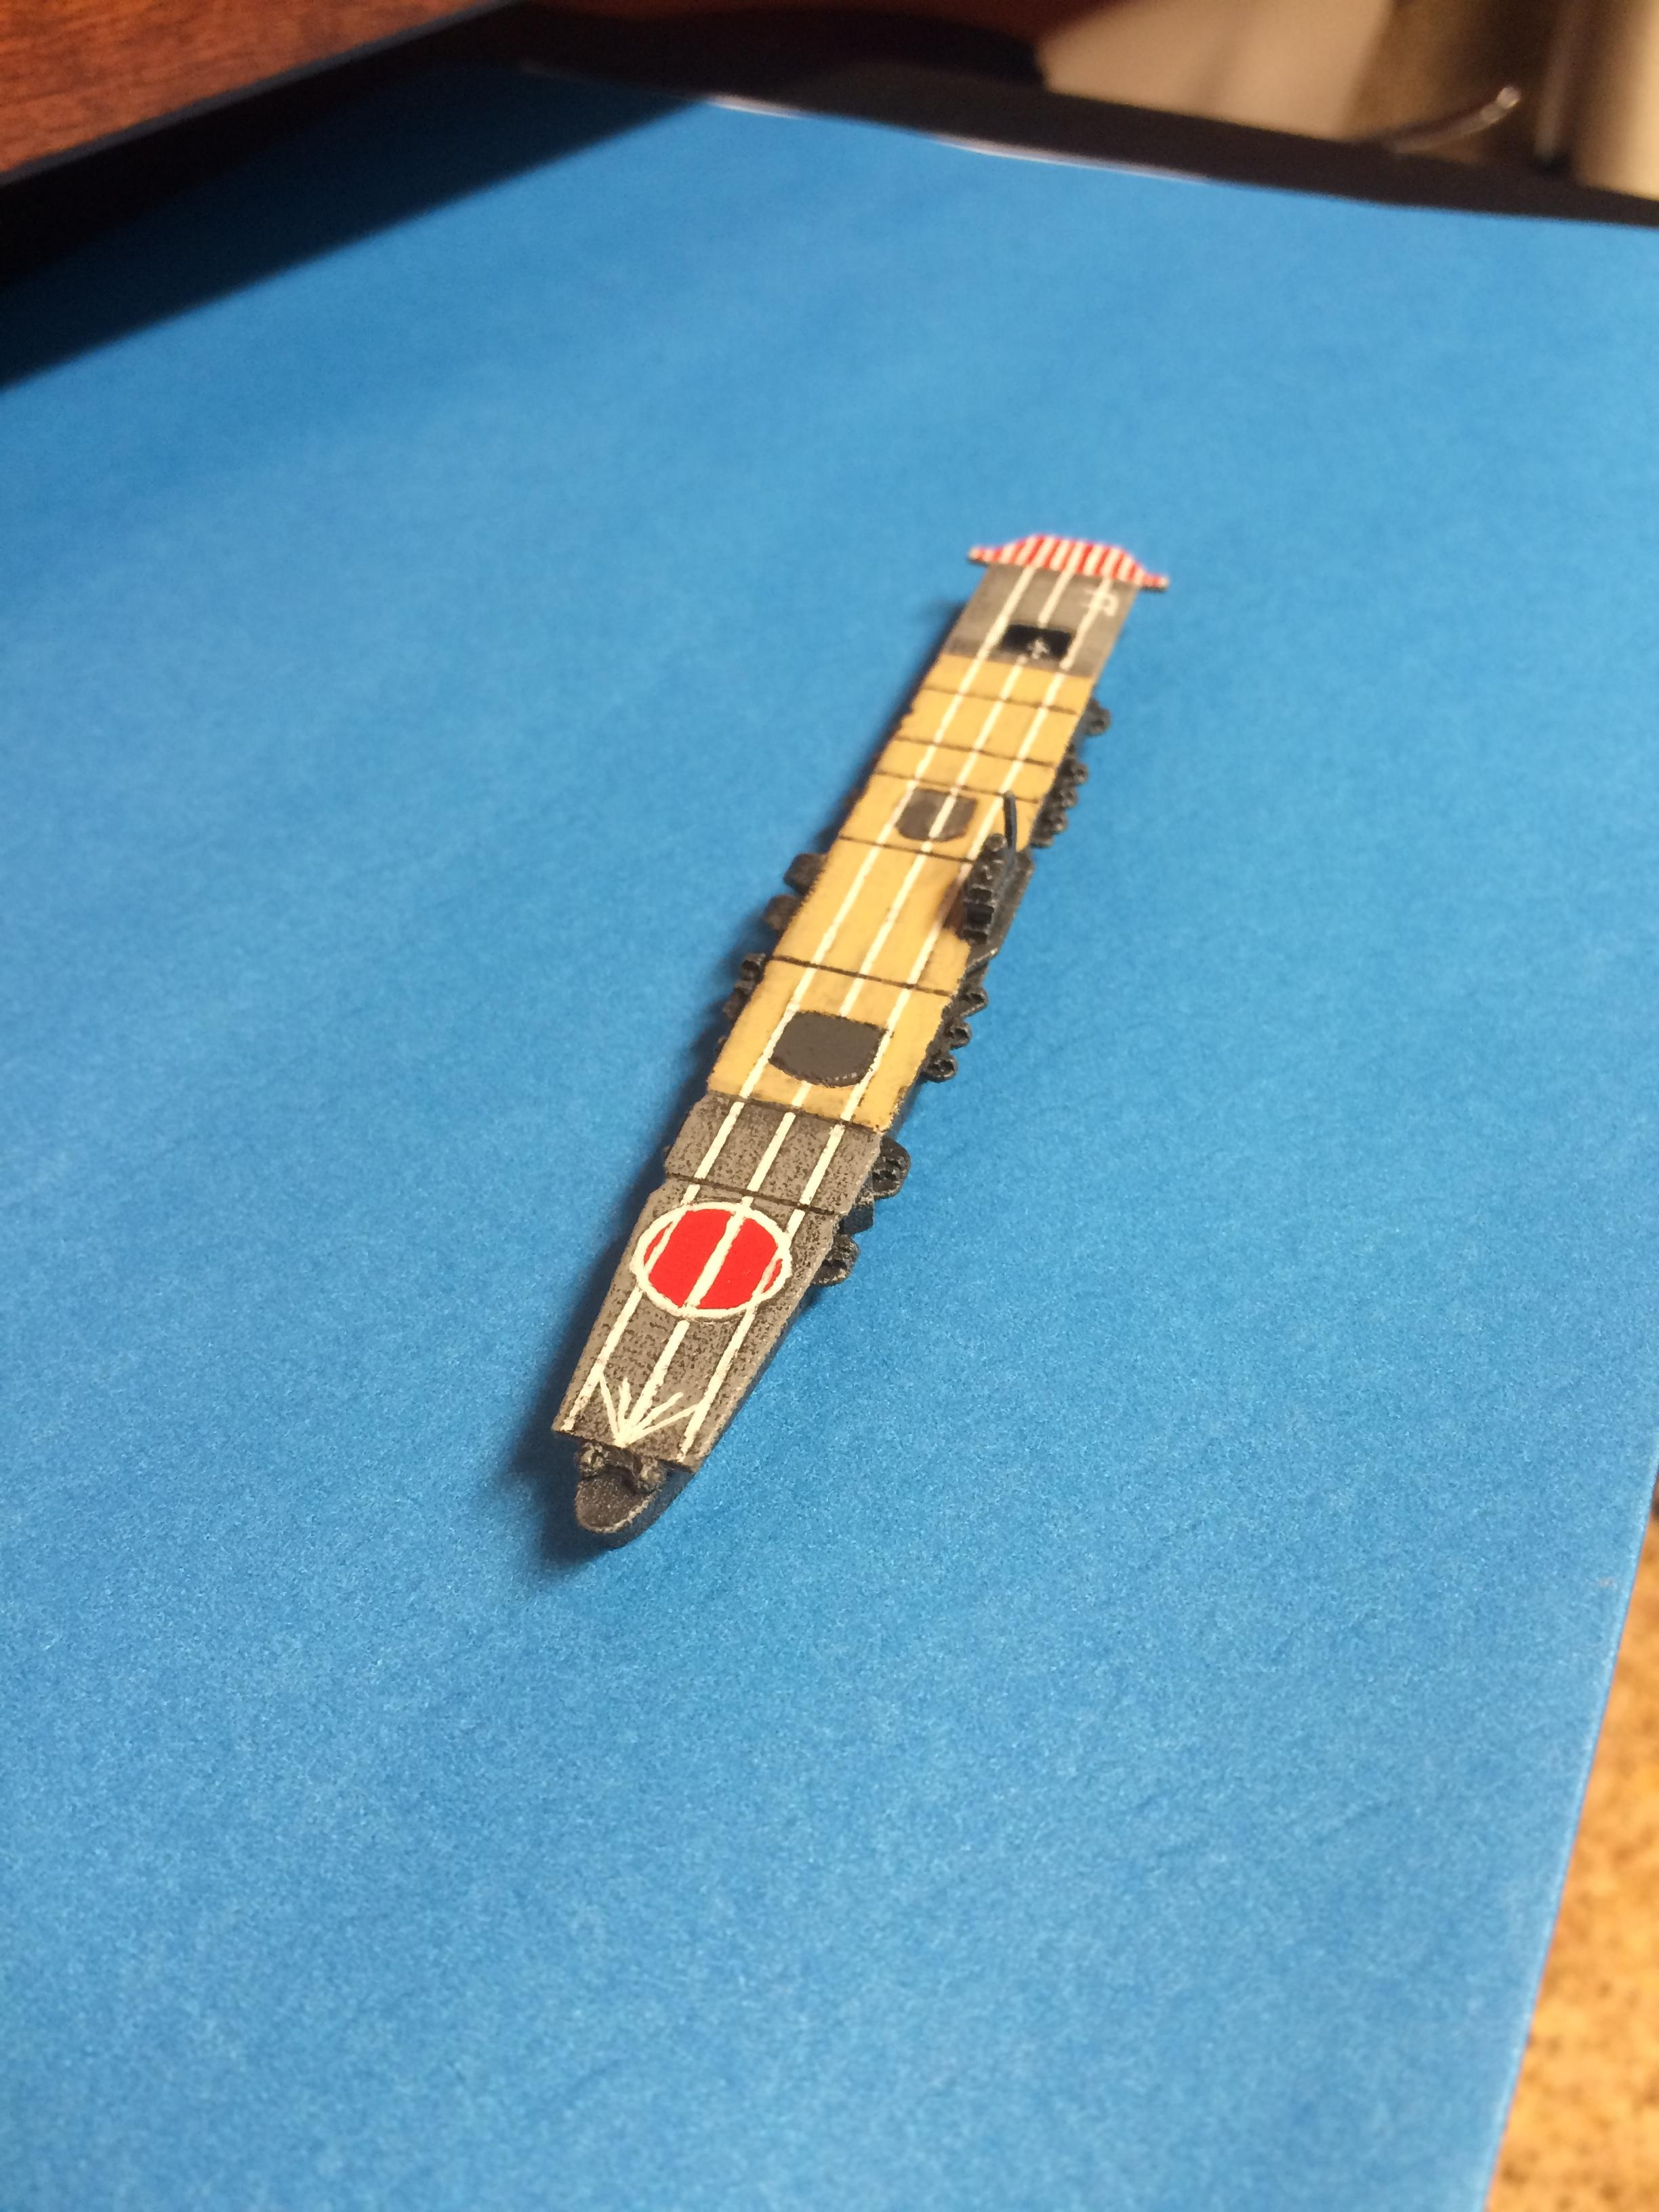 Carrier, Ijn, Japanese, Shapeways, Wart At Sea